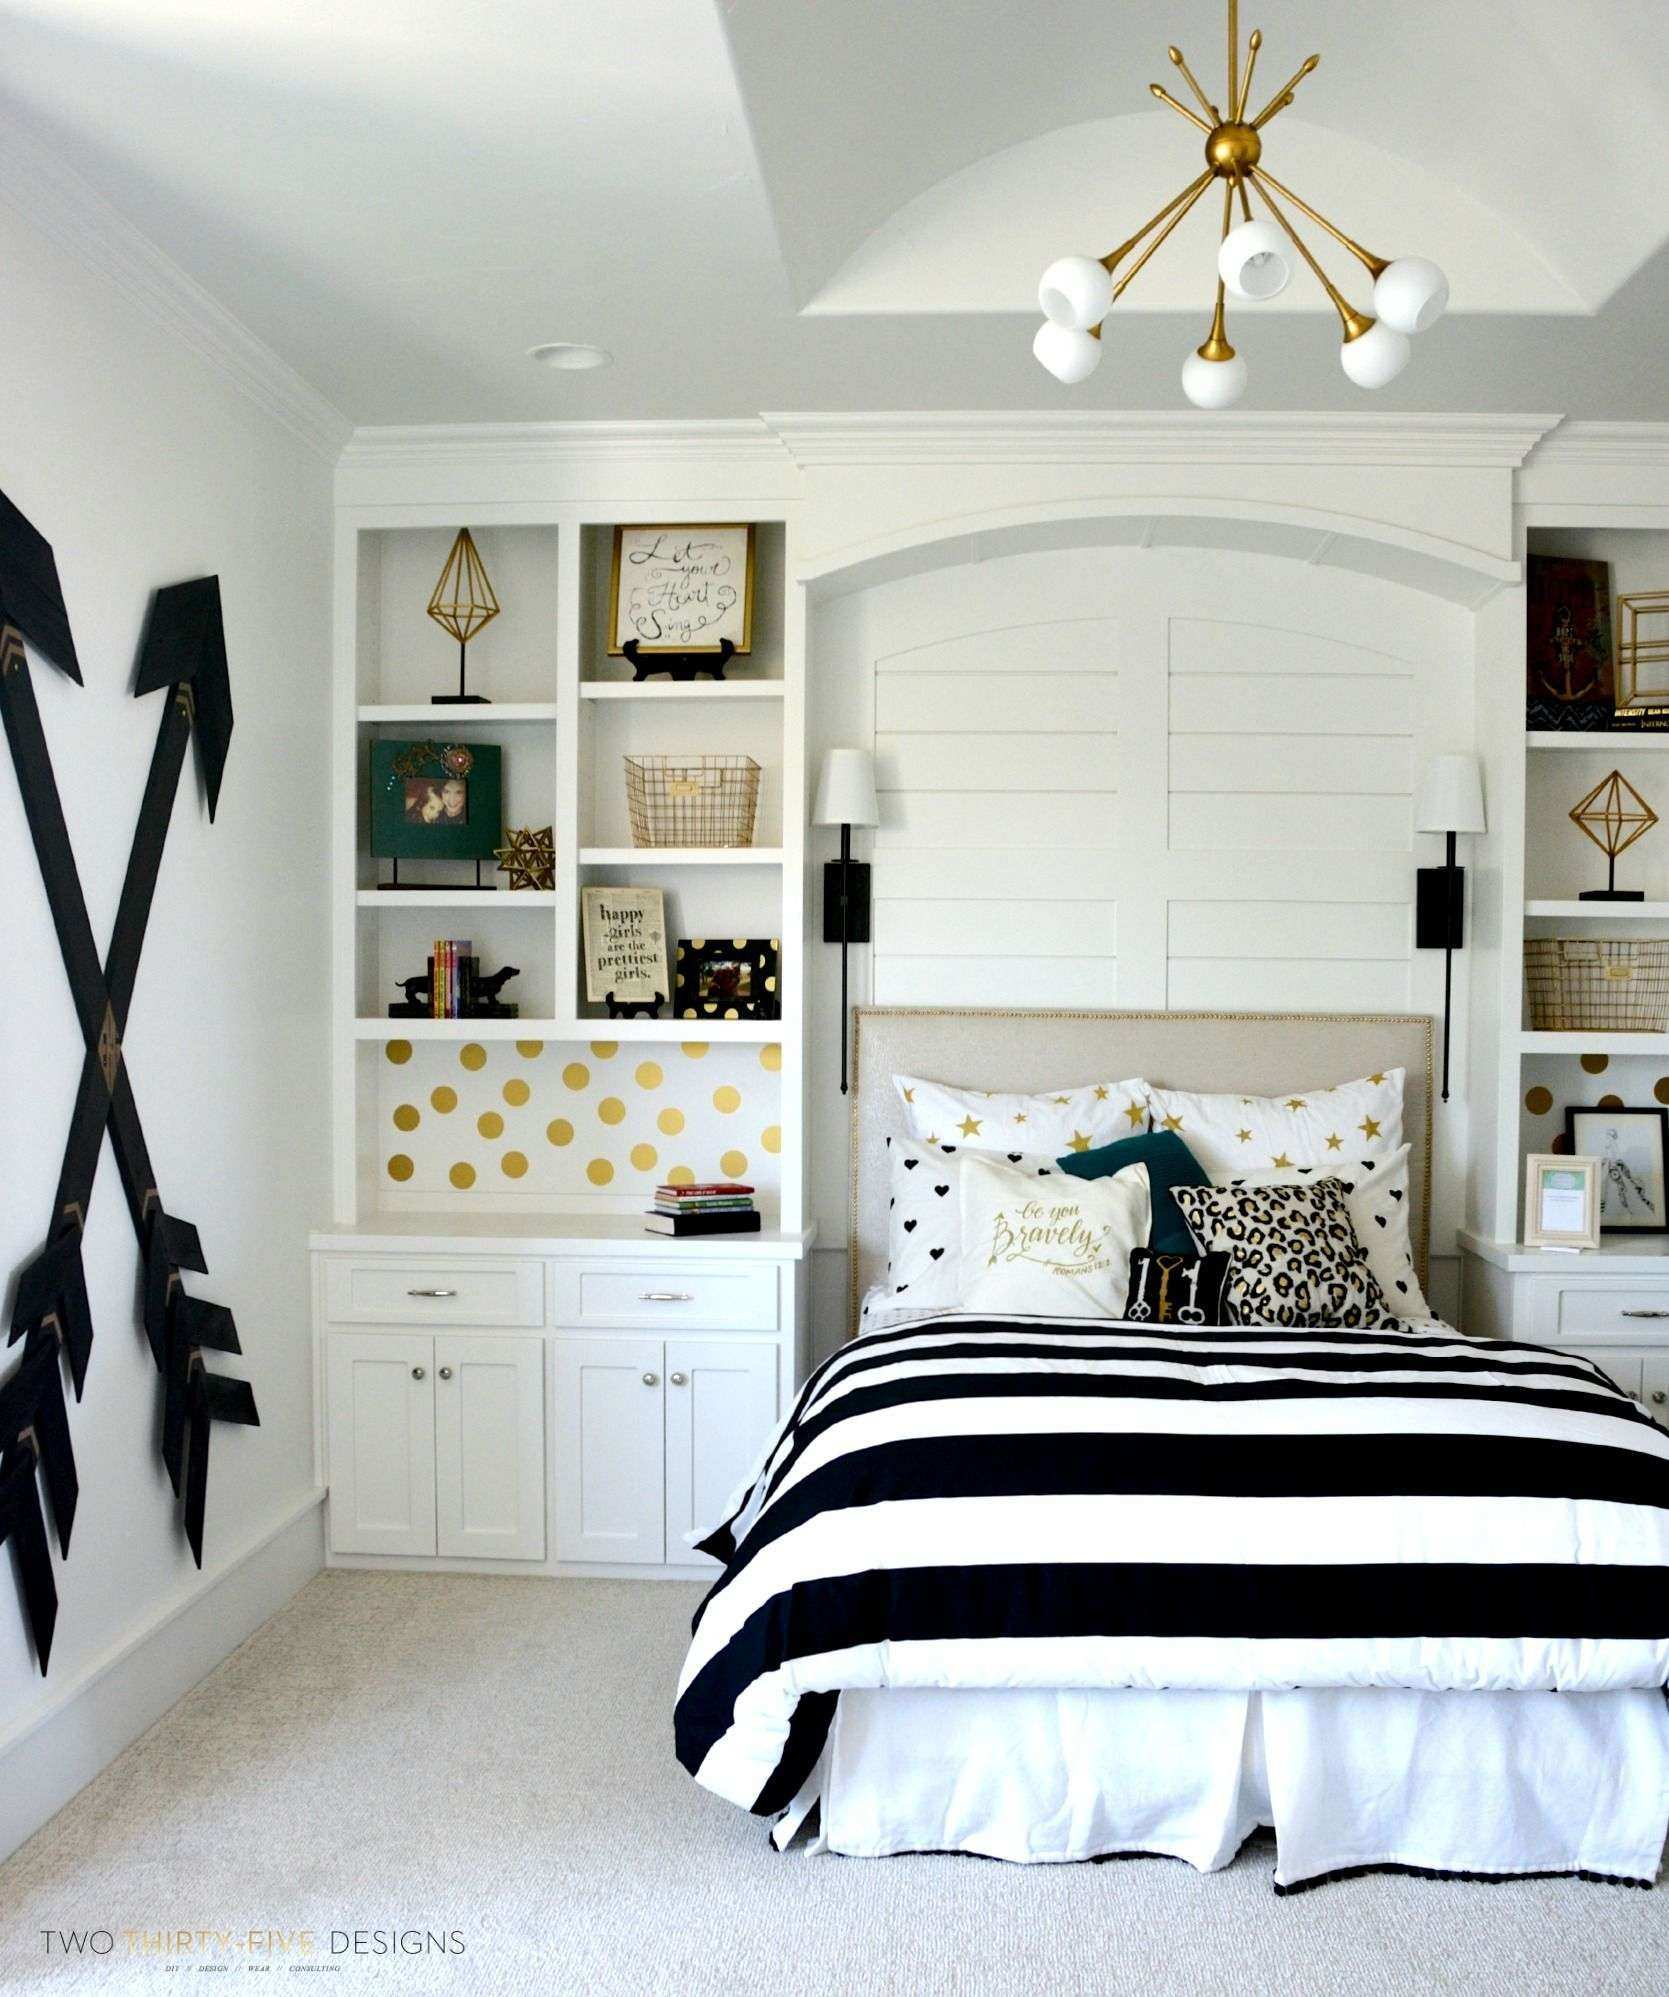 49 Inspirational Grey and White Bedroom Ideas Gallery